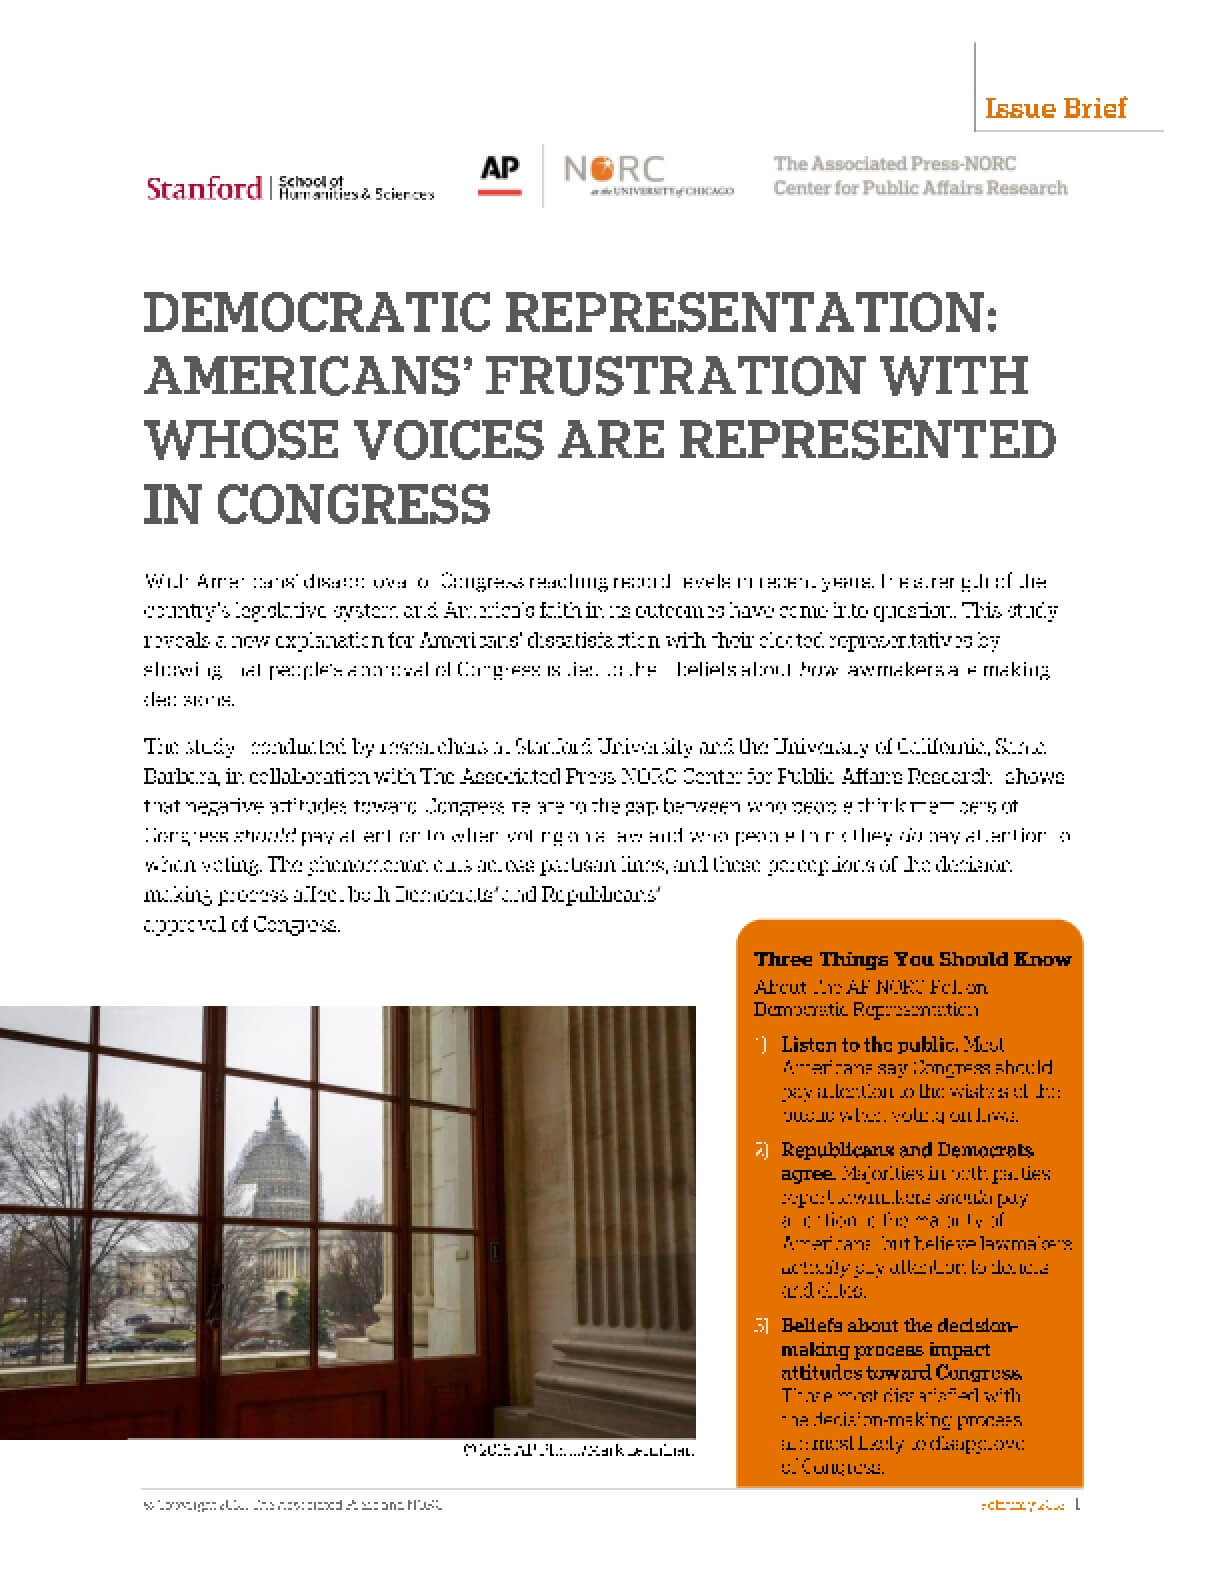 Democratic Representation: Americans' Frustration with Whose Voices are Represented in Congress